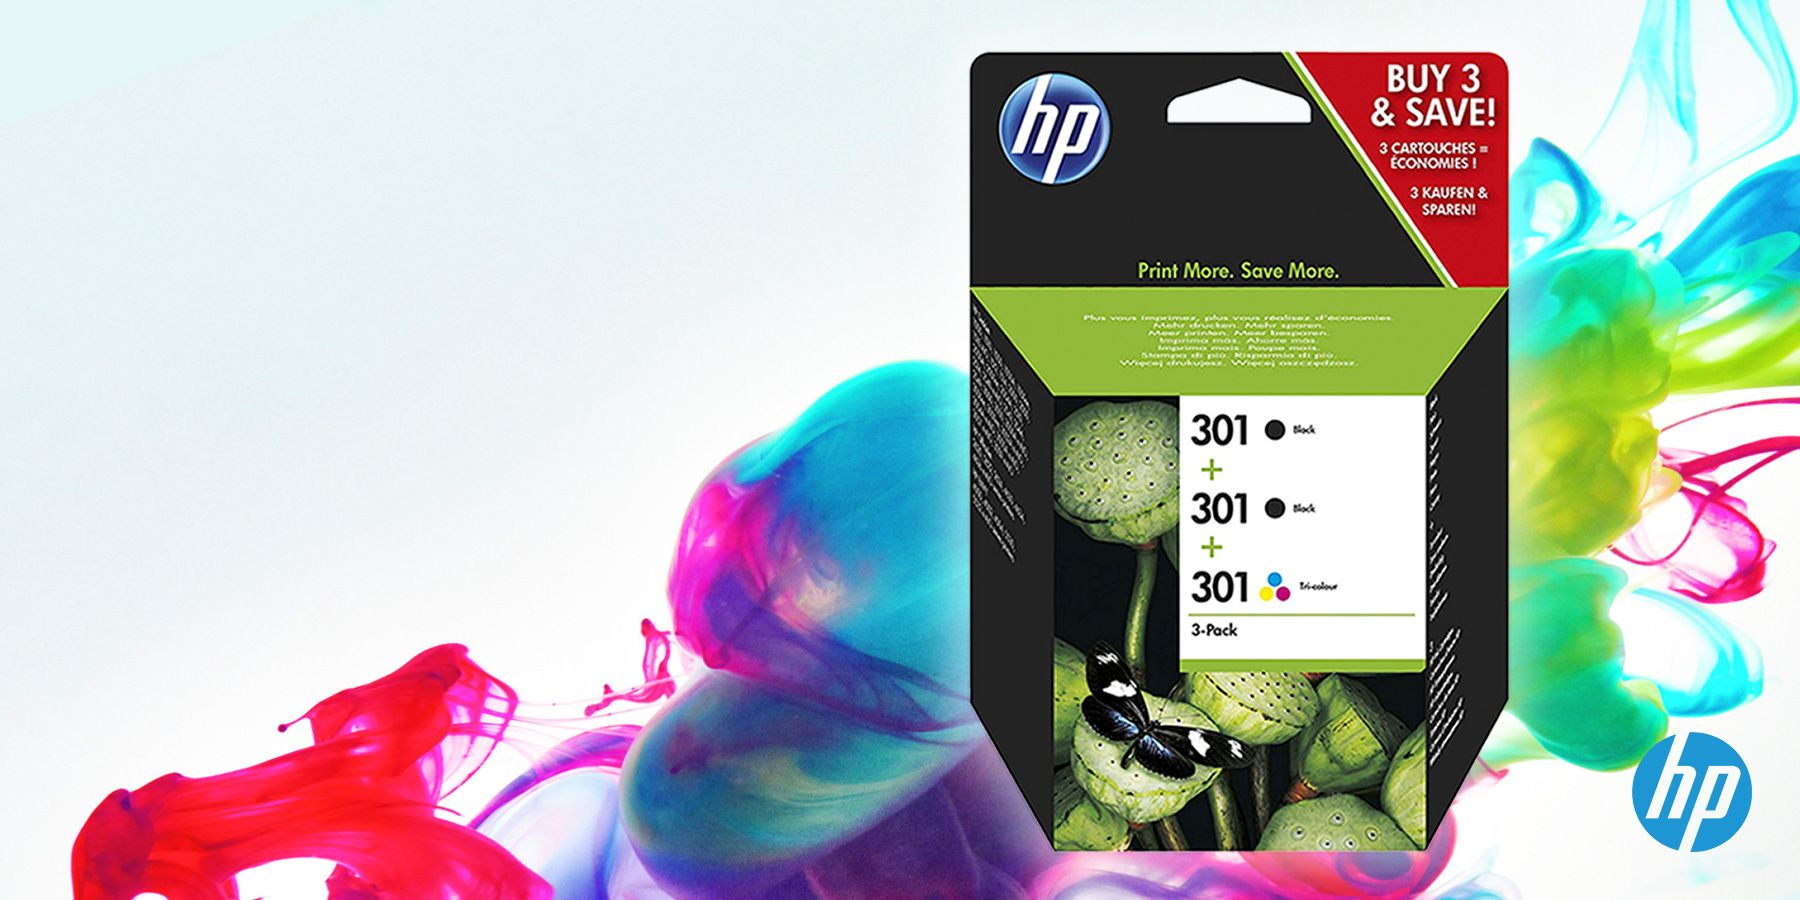 Printers | Wireless Printer, Photo Printer, Ink Cartridge